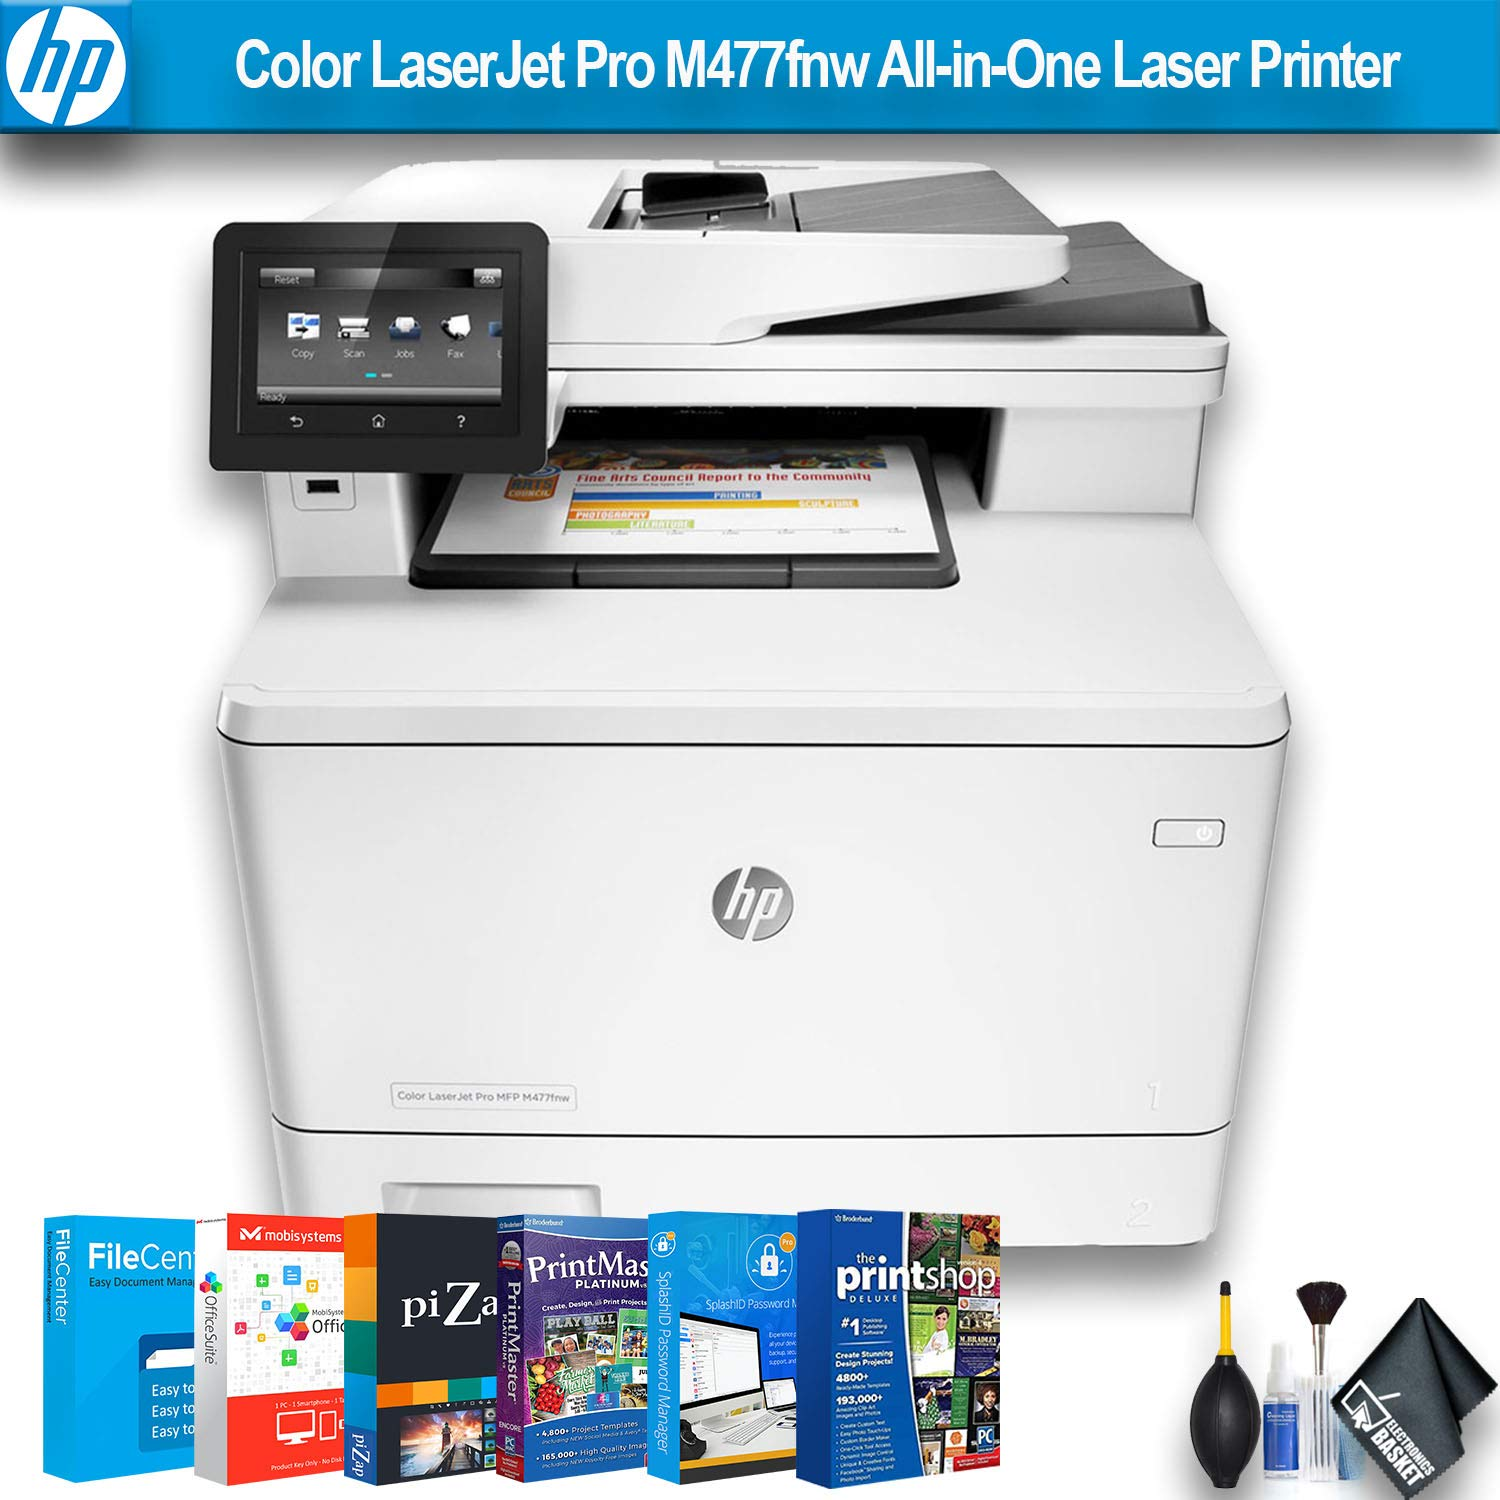 HP Color Laserjet Pro M477fnw All-in-One Laser Printer (CF377A) W/Printer Essentials Software by HP (Image #1)